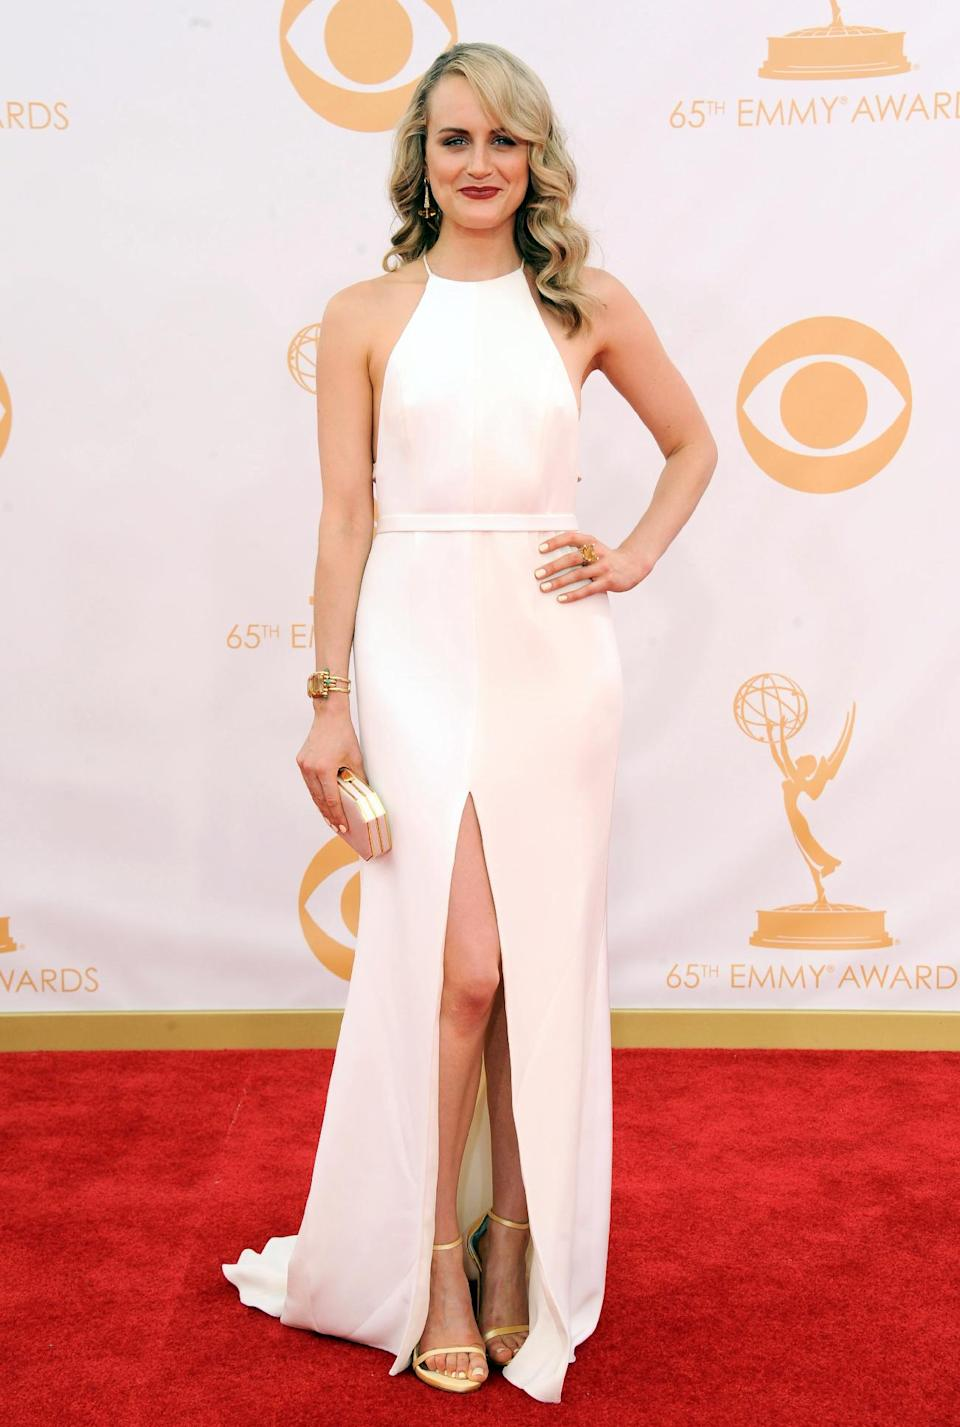 Taylor Schilling arrives at the 65th Primetime Emmy Awards at Nokia Theatre on Sunday Sept. 22, 2013, in Los Angeles. (Photo by Jordan Strauss/Invision/AP)